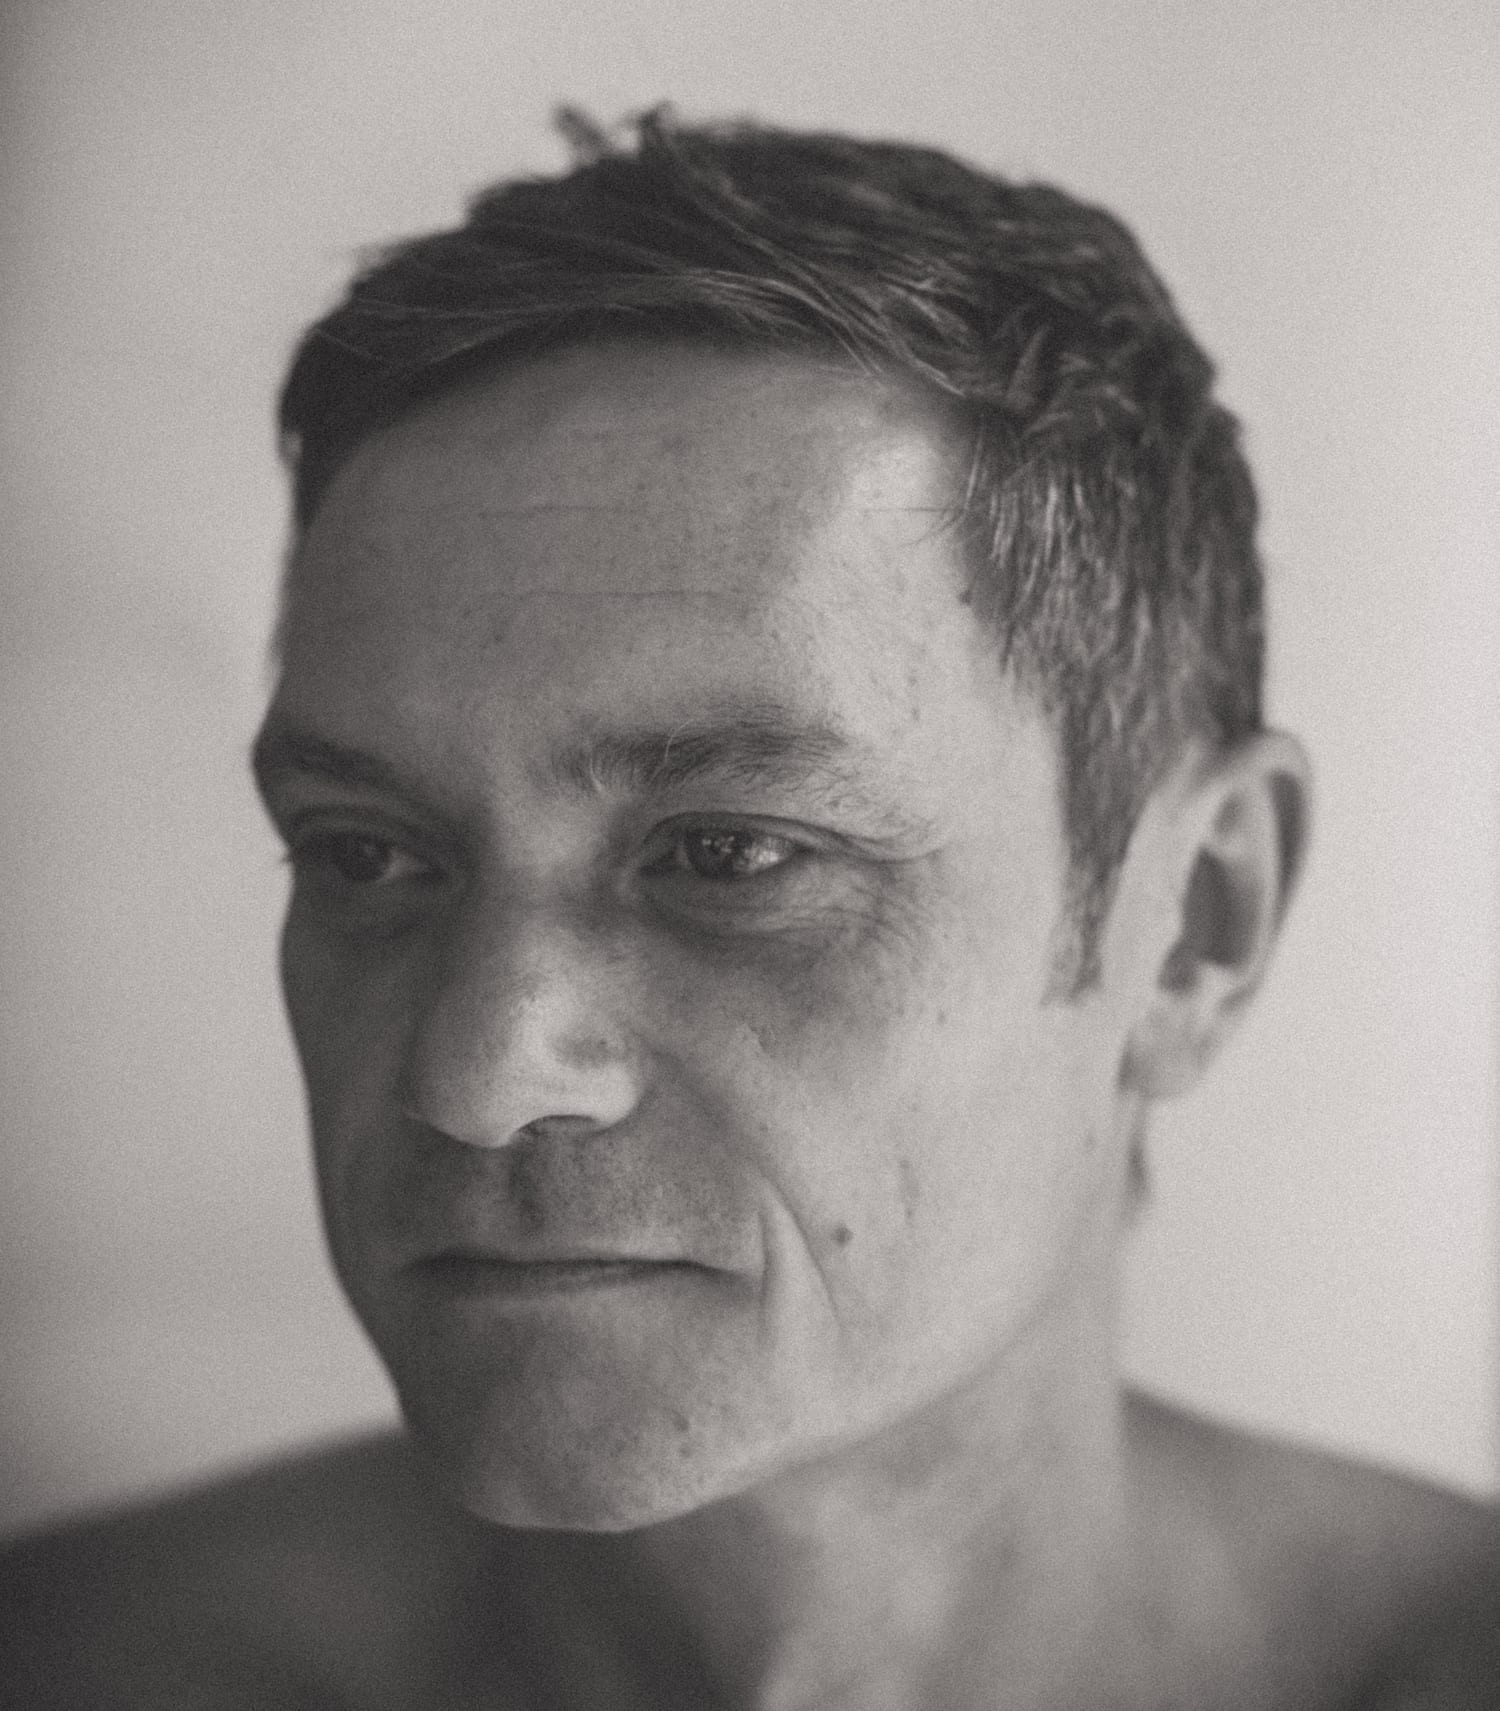 Getting To Know... Ralf GUM